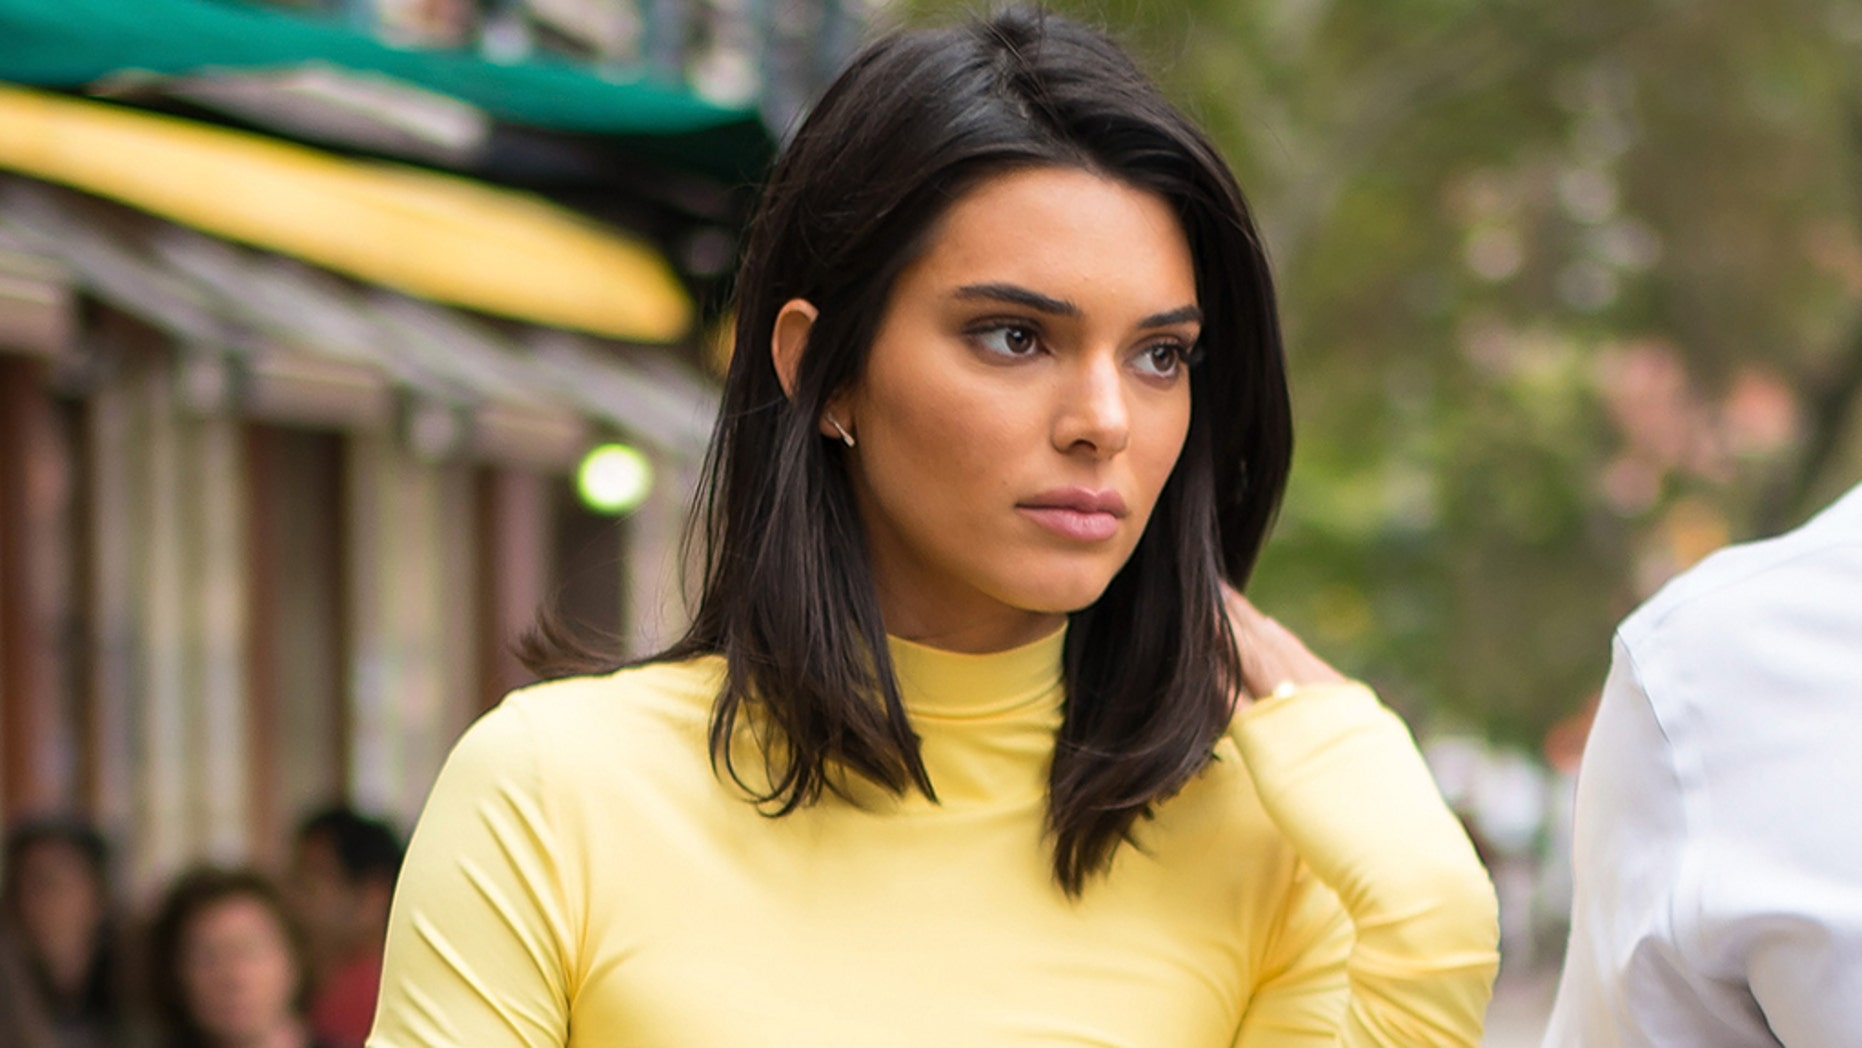 Kendall Jenner's 'Most Raw Story' to Help People Disappoints Everyone